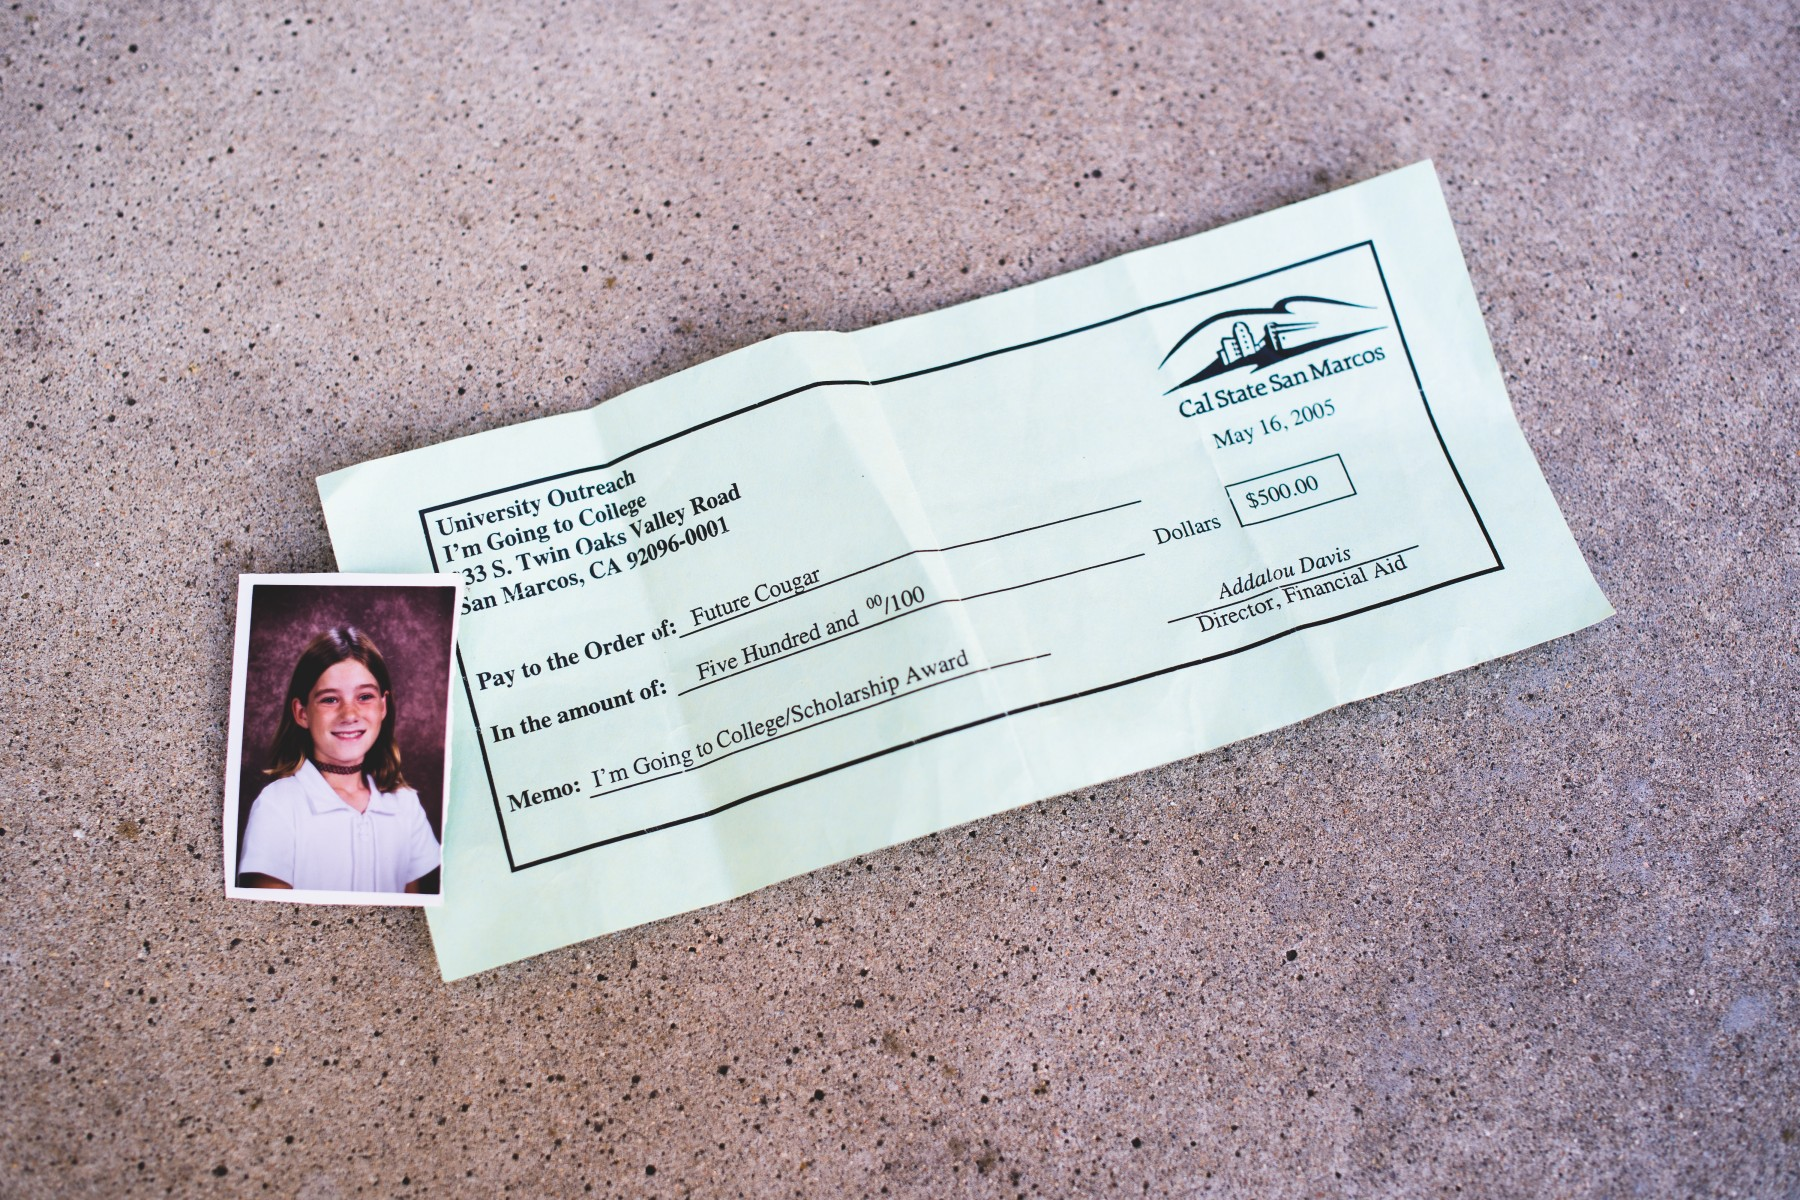 CSUSM student Chloe Hartman's mom kept this mock check that her daughter received on a field trip. More than a decade later, an anonymous donor honored it. Photo by Alan Brown